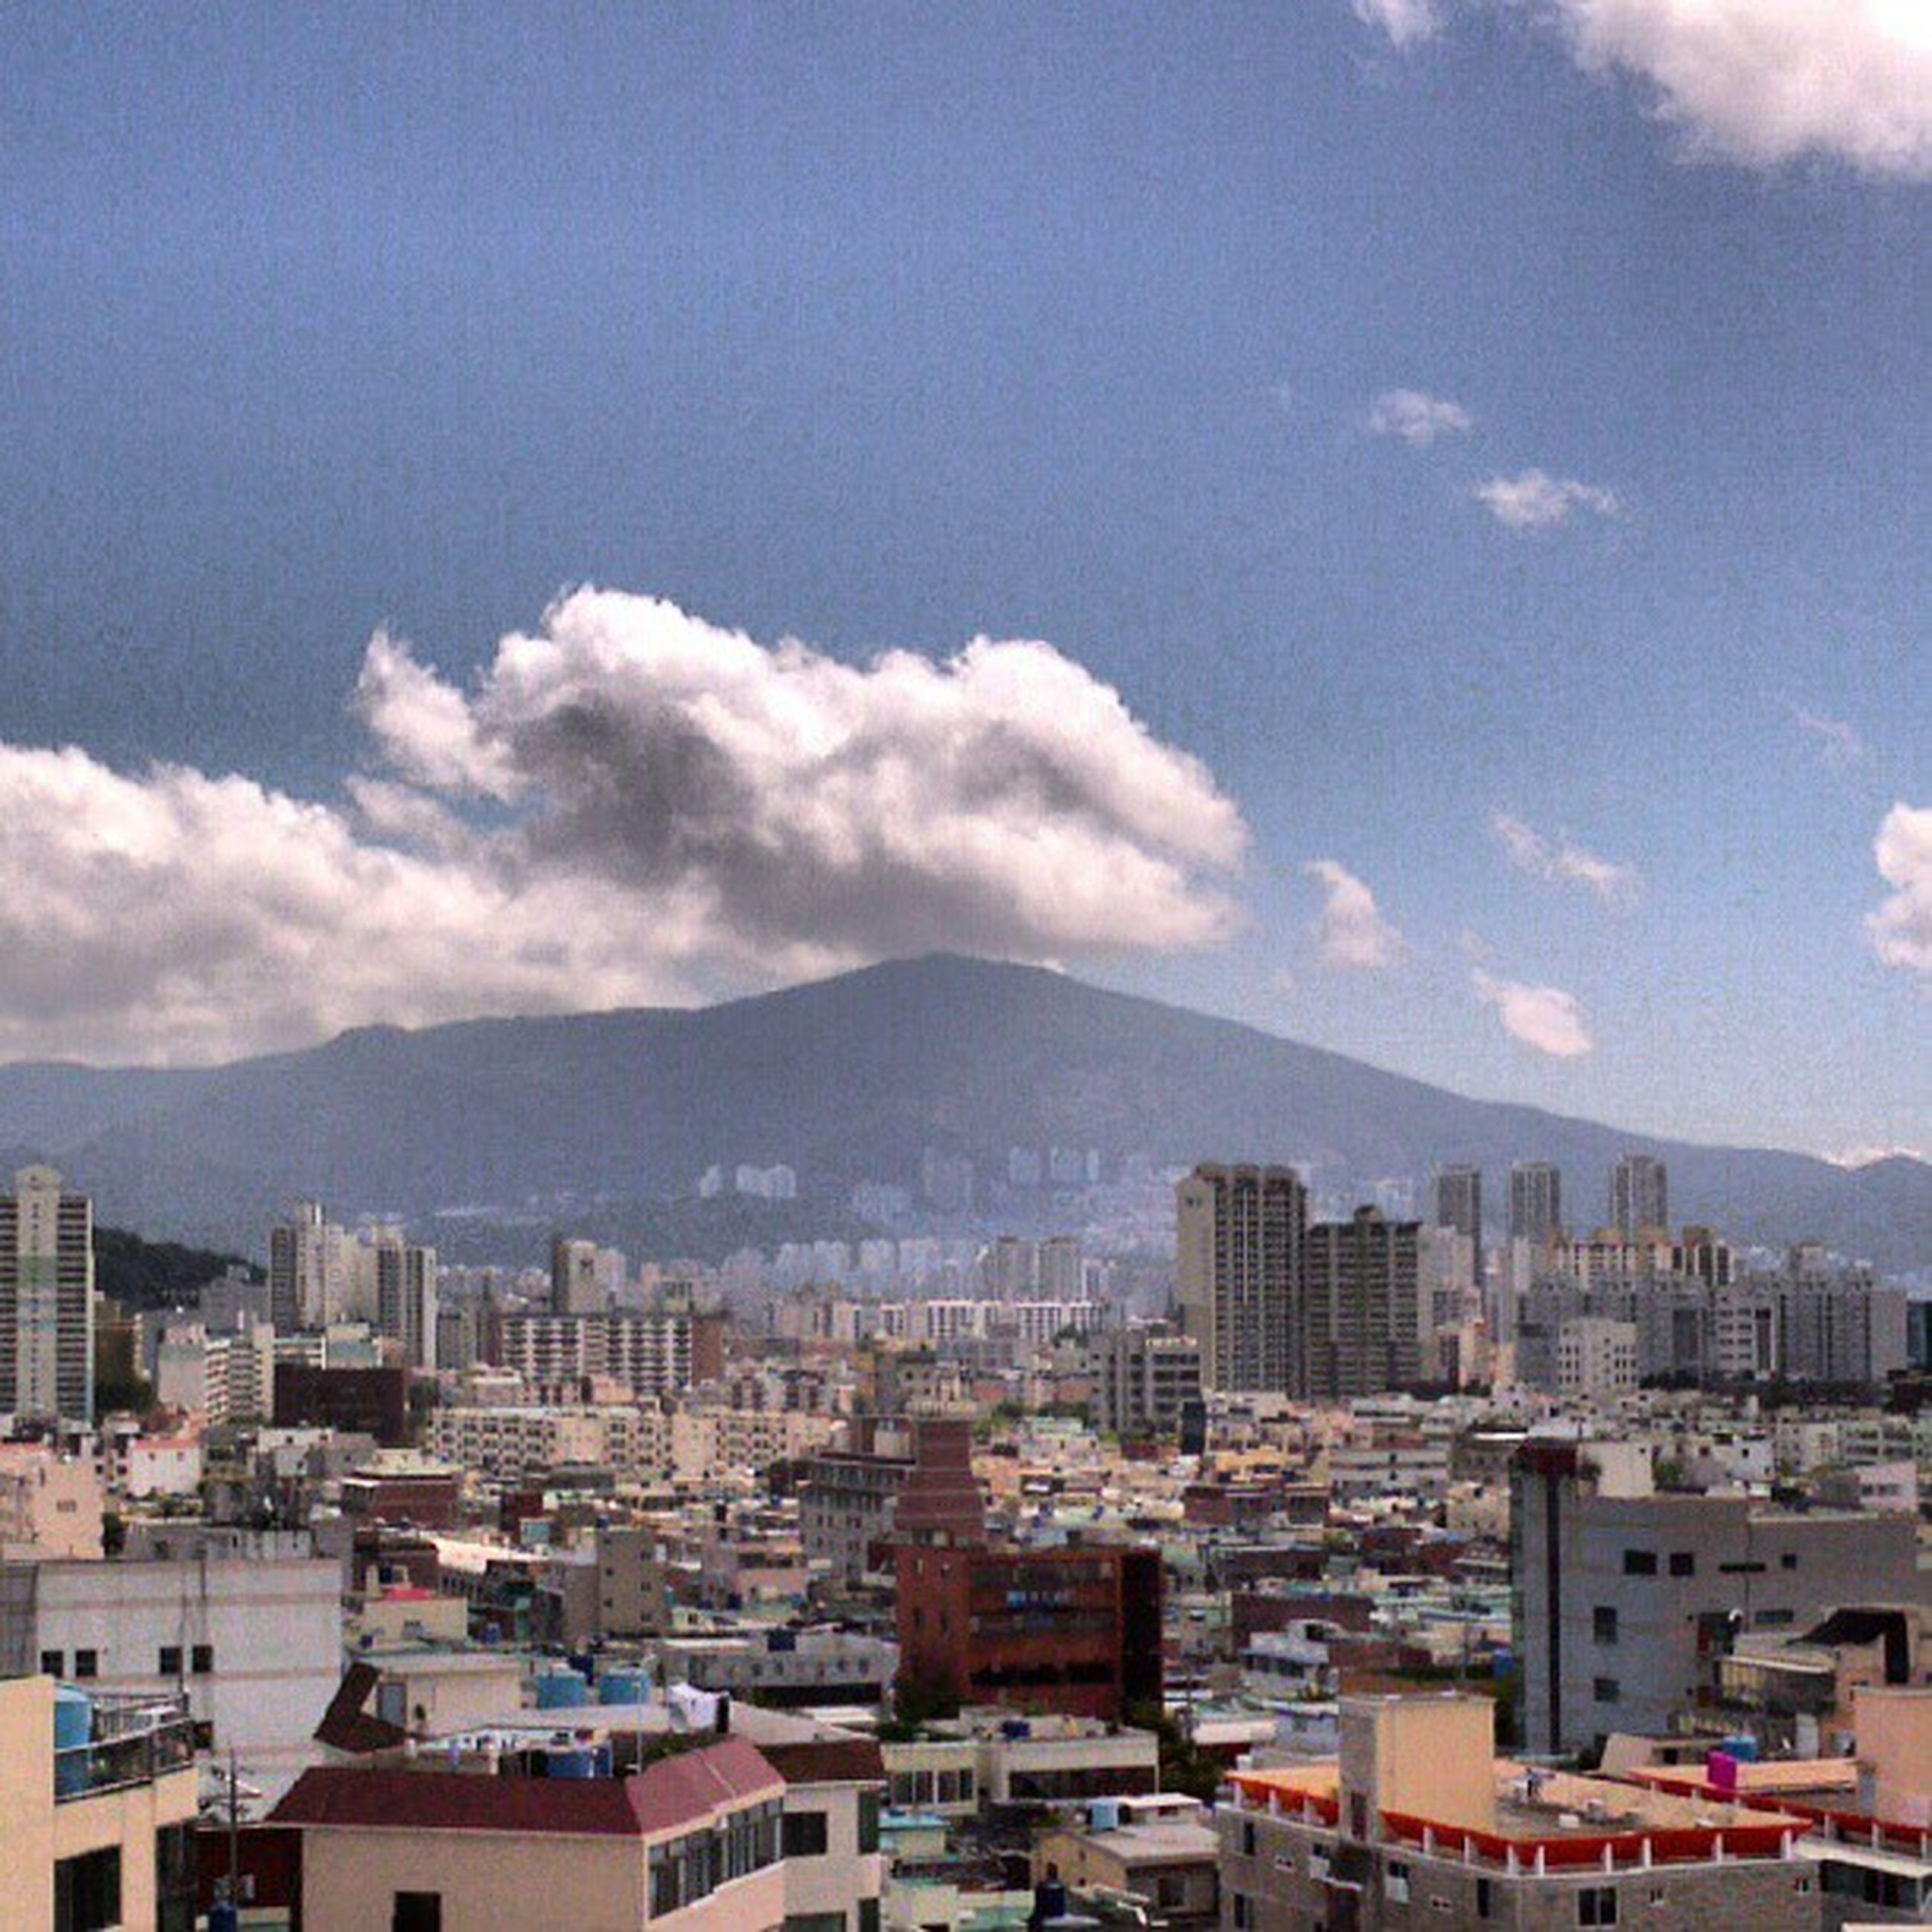 building exterior, architecture, cityscape, built structure, city, sky, crowded, residential district, mountain, residential building, cloud - sky, residential structure, cloud, high angle view, mountain range, skyscraper, city life, day, outdoors, no people